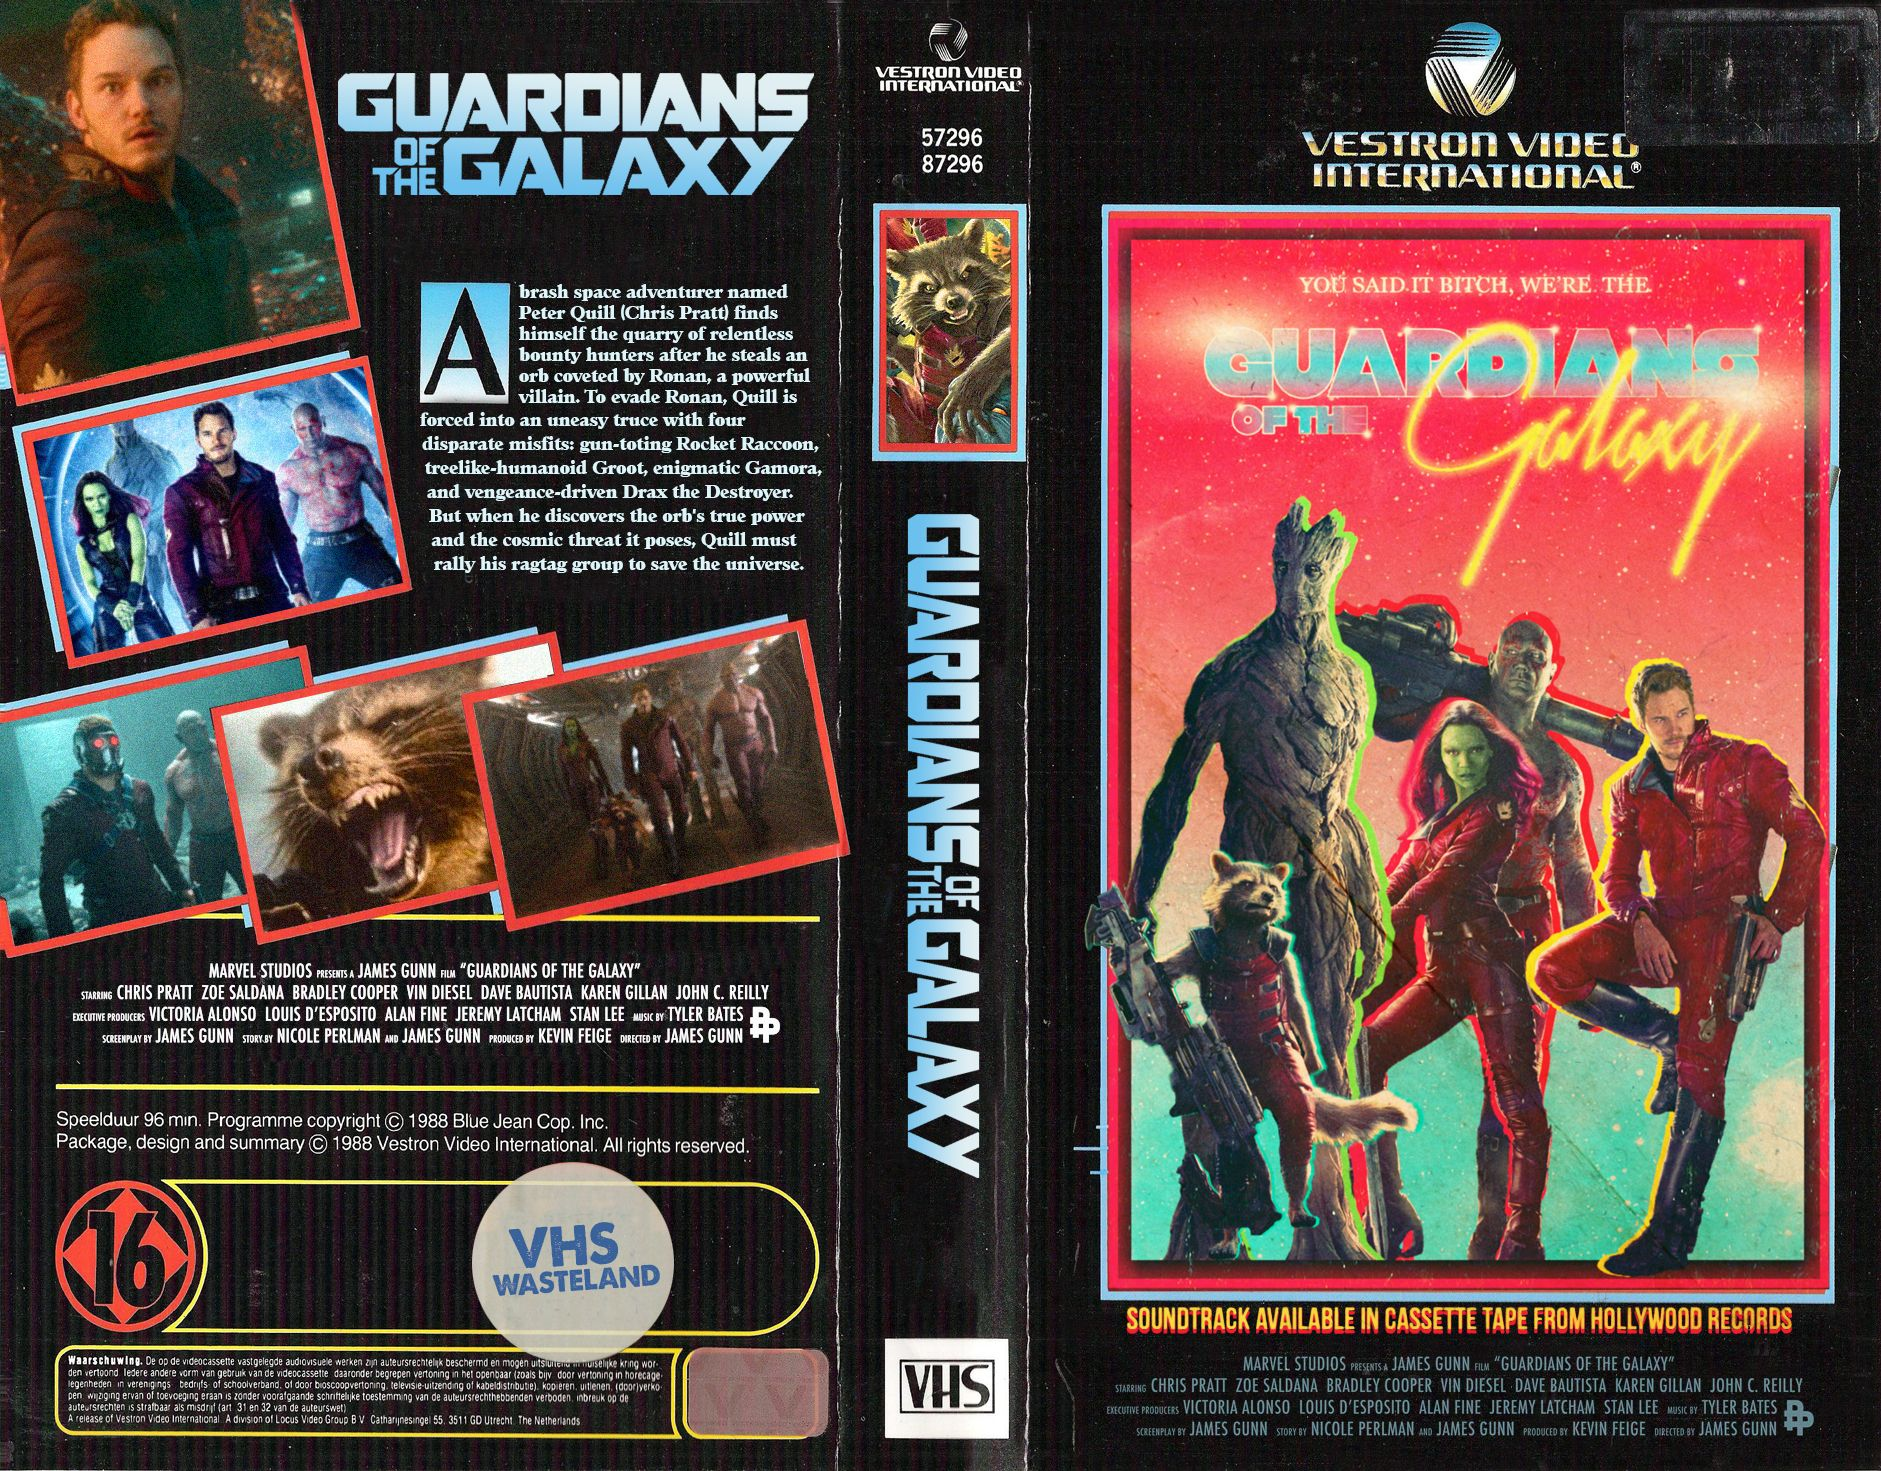 Guardians Of The Galaxy Custom Vhs Cover Vhs Alternative Movie Posters Vhs Movie